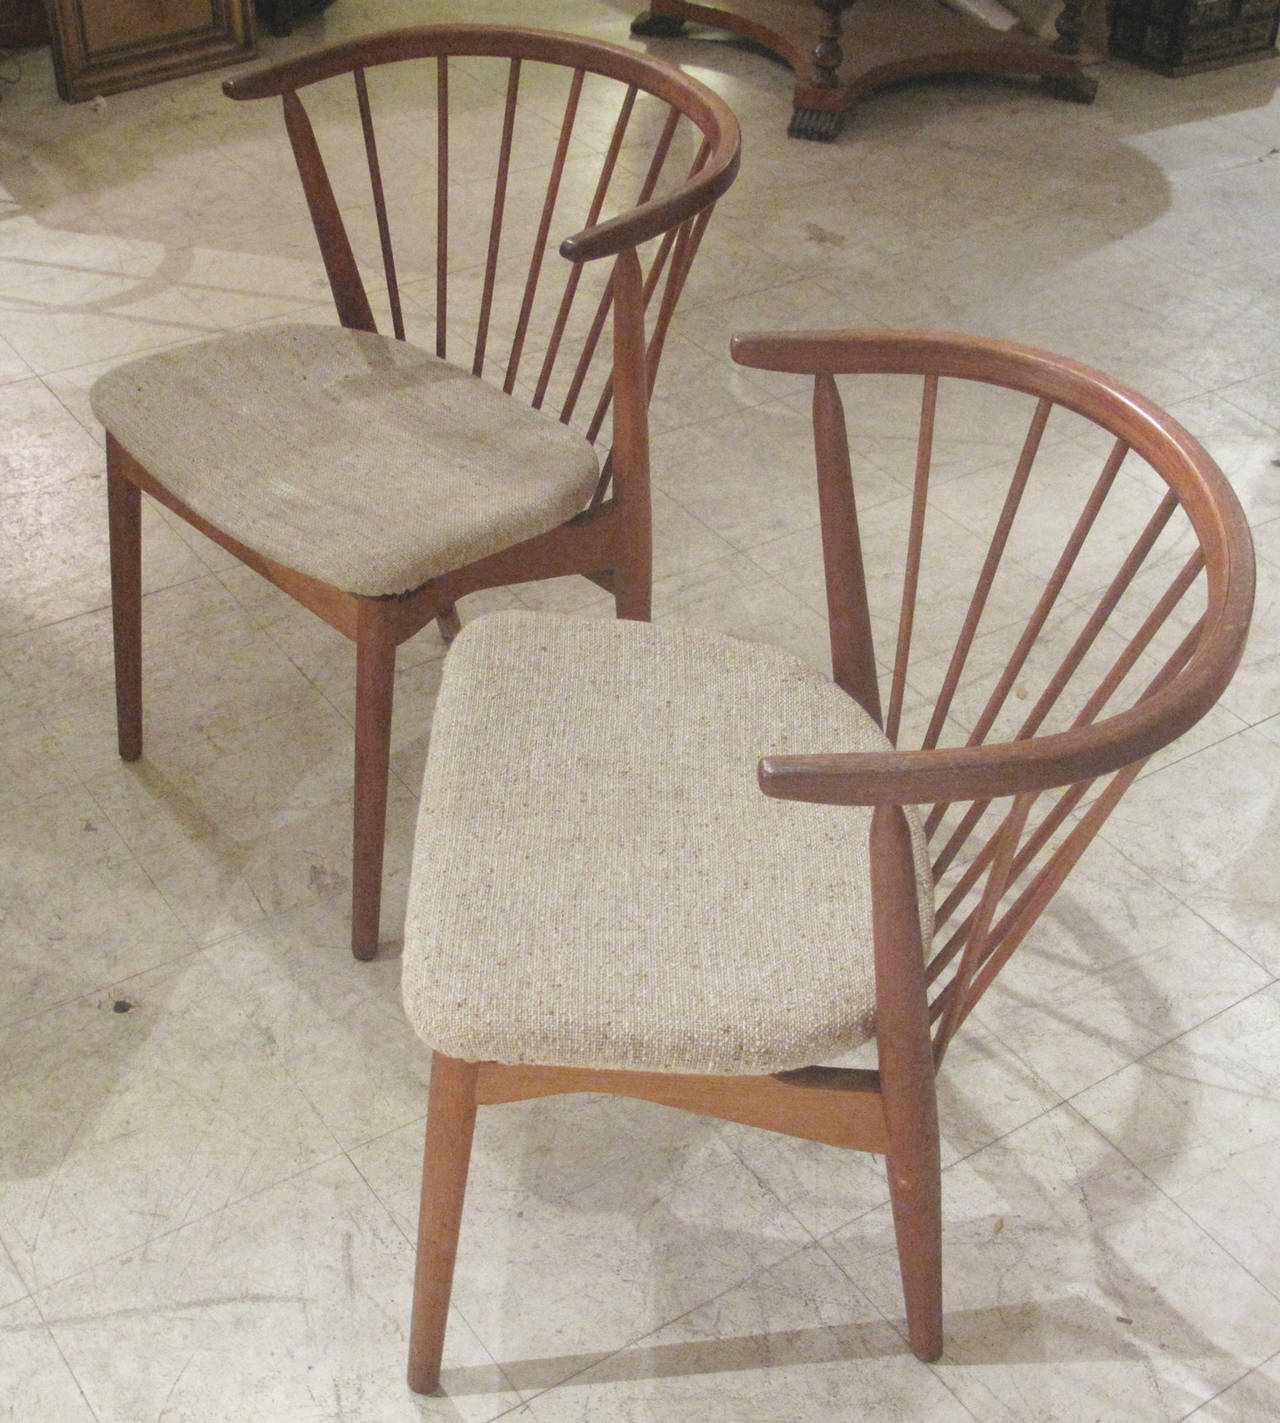 Pair Of Danish Spindle Back Teak Chairs By Helge Sibast 1950s 1960s For Sale At 1stdibs